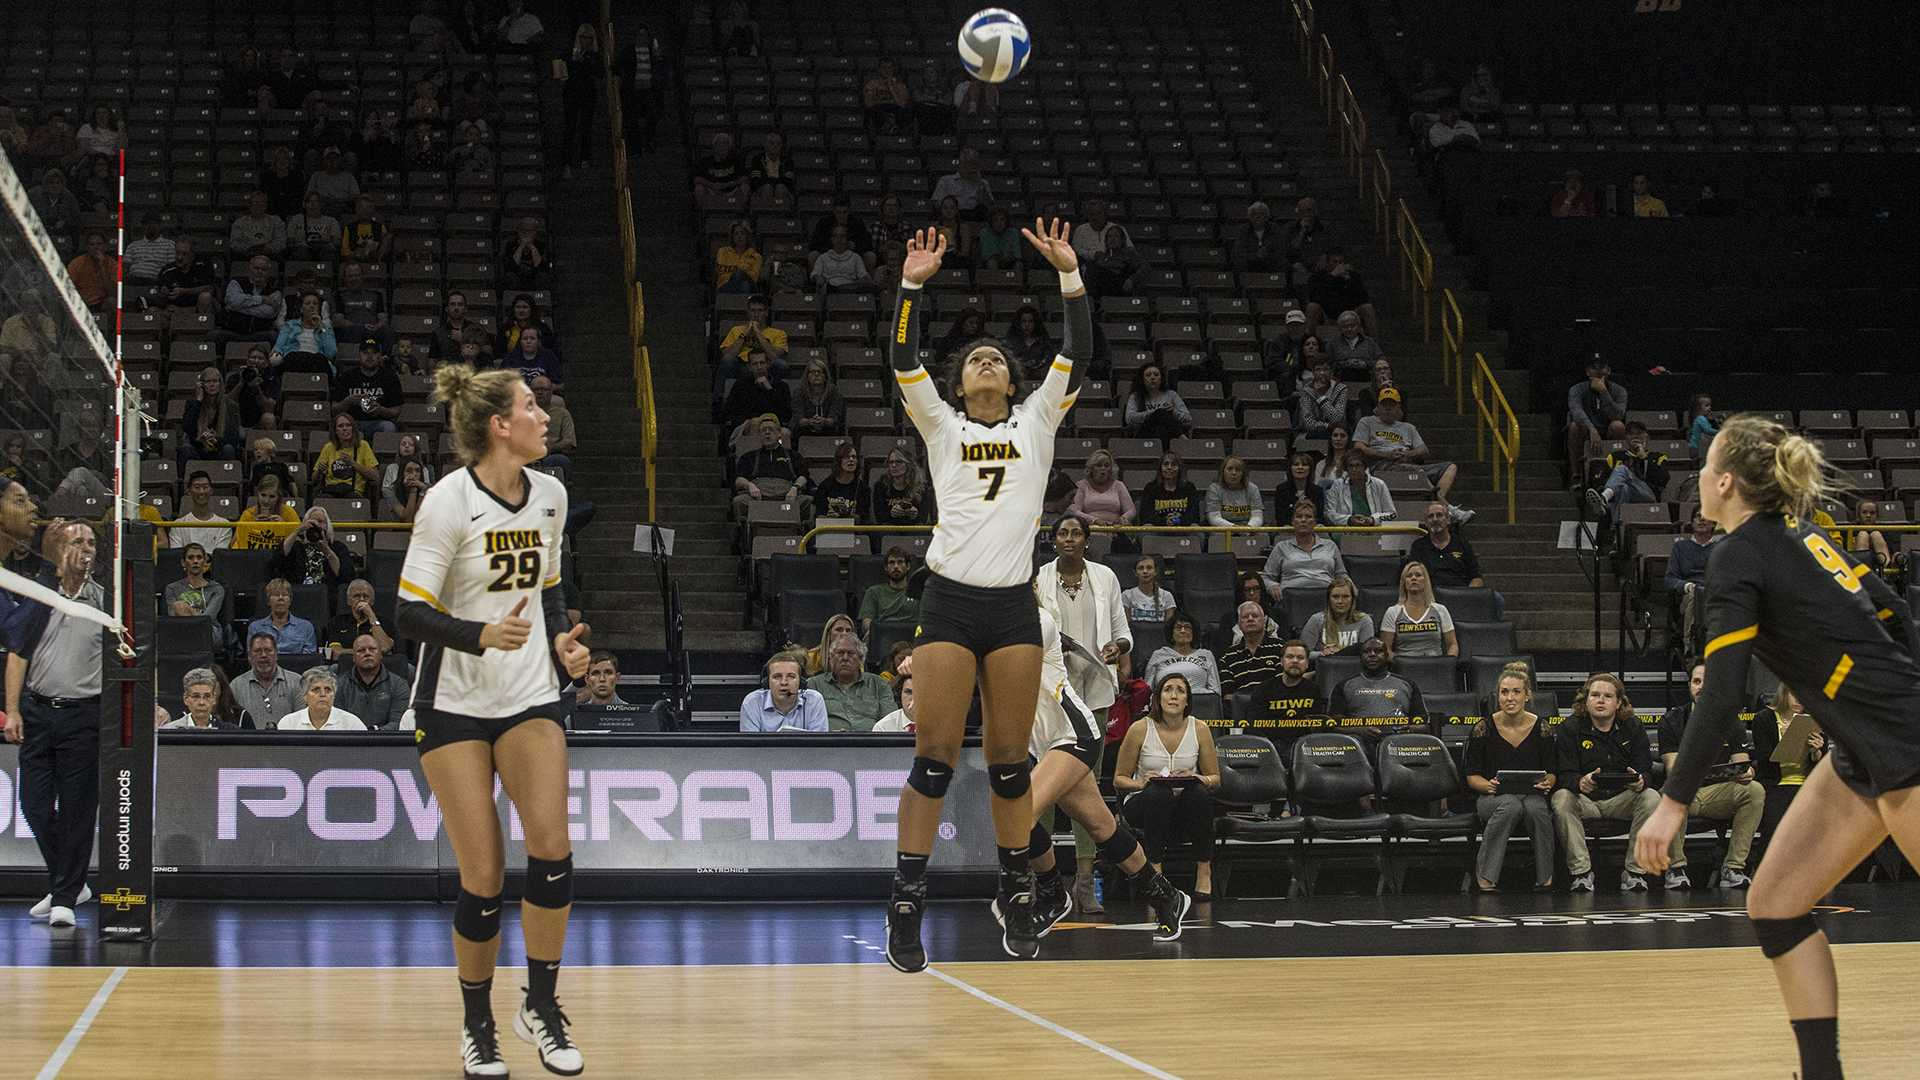 Iowa's Brie Orr (9) sets the ball during a match against Michigan on Wednesday, Oct. 4, 2017. Iowa defeated Michigan 3 sets to 1. (Nick Rohlman/The Daily Iowan)